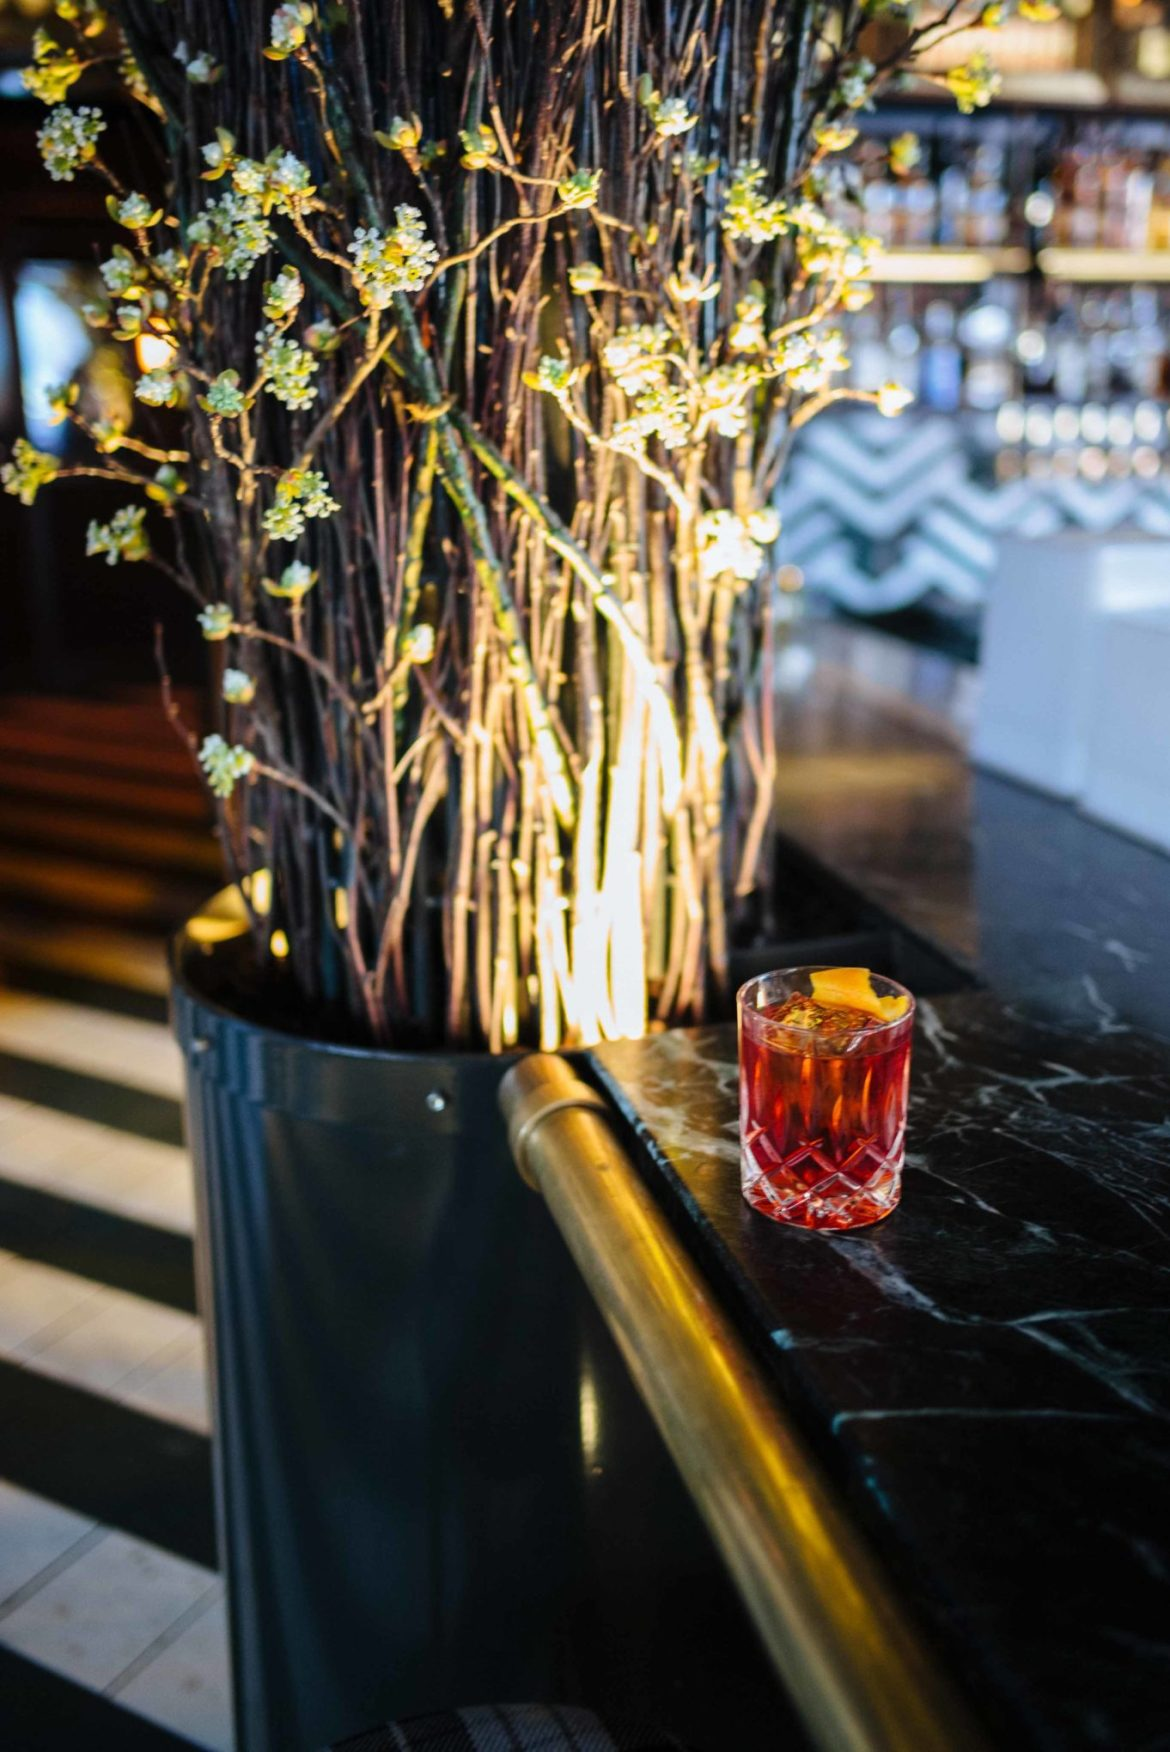 over-the-top steakhouse at Born and Raised with classic cocktails like Negroni at their rooftop bar in San Diego